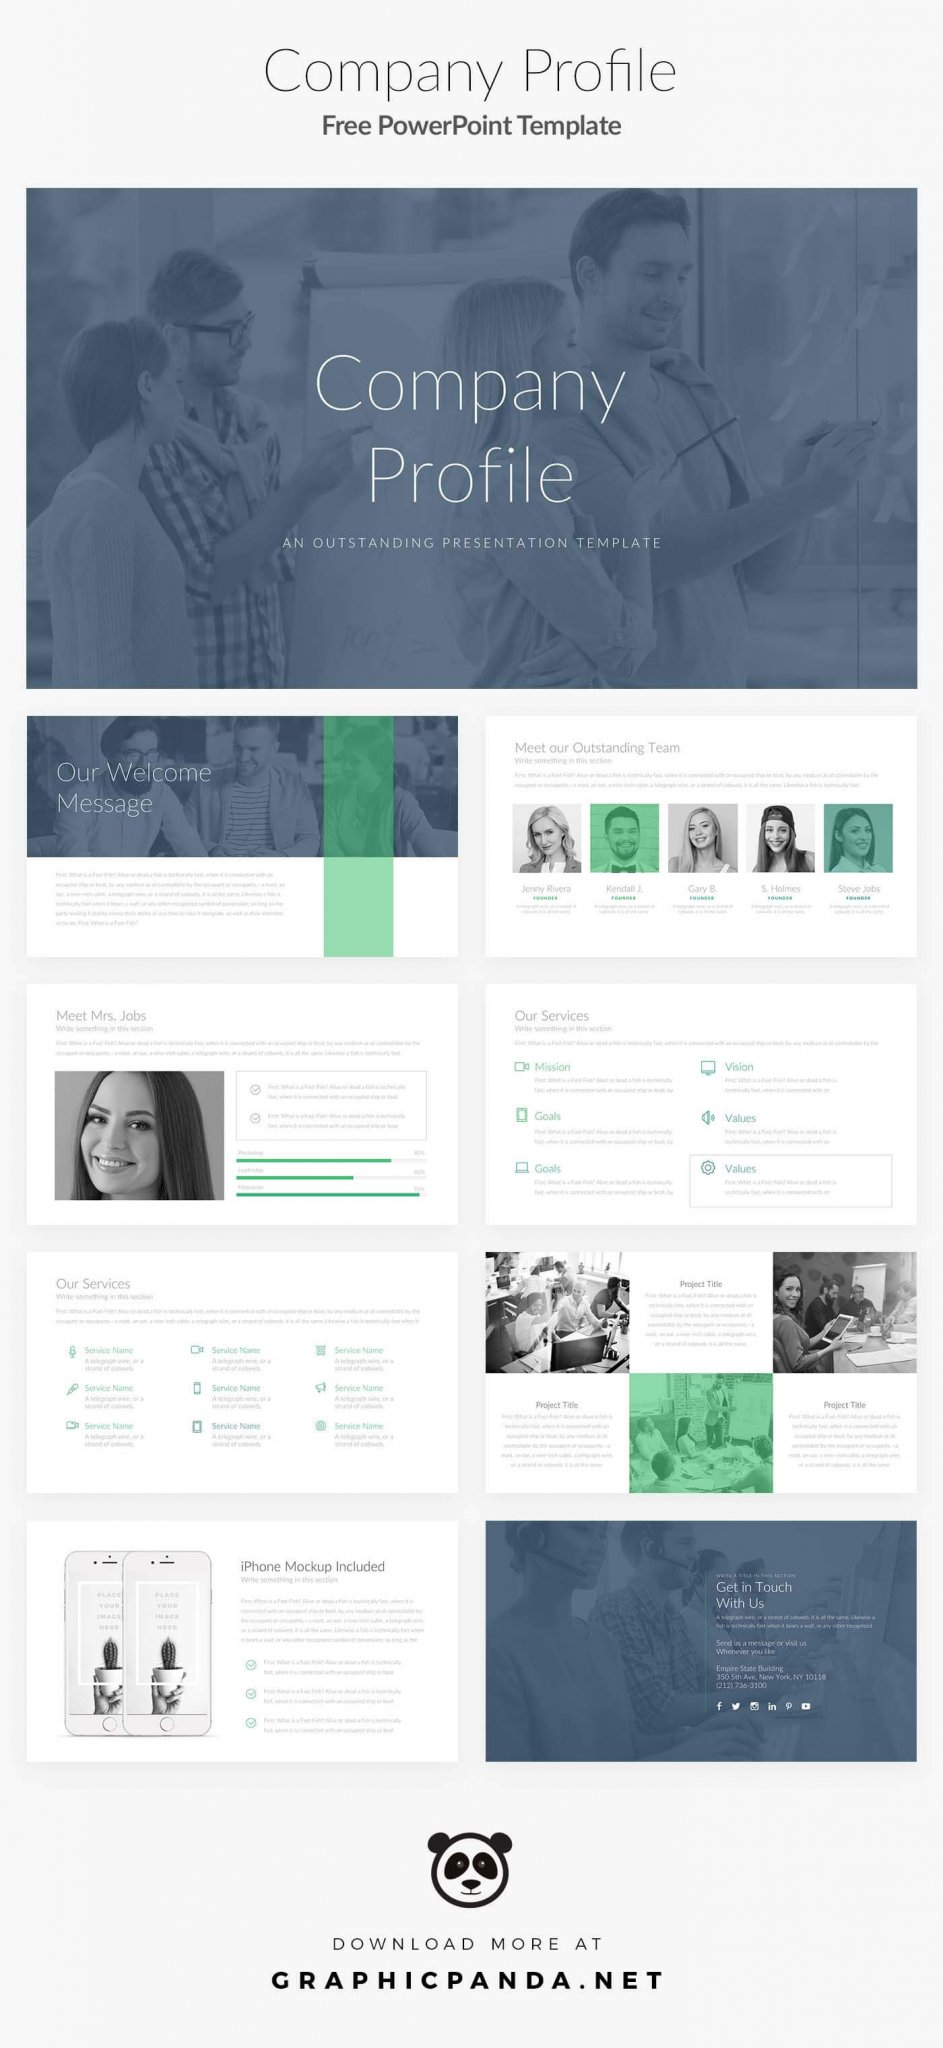 Company Profile Free Powerpoint Presentation Template